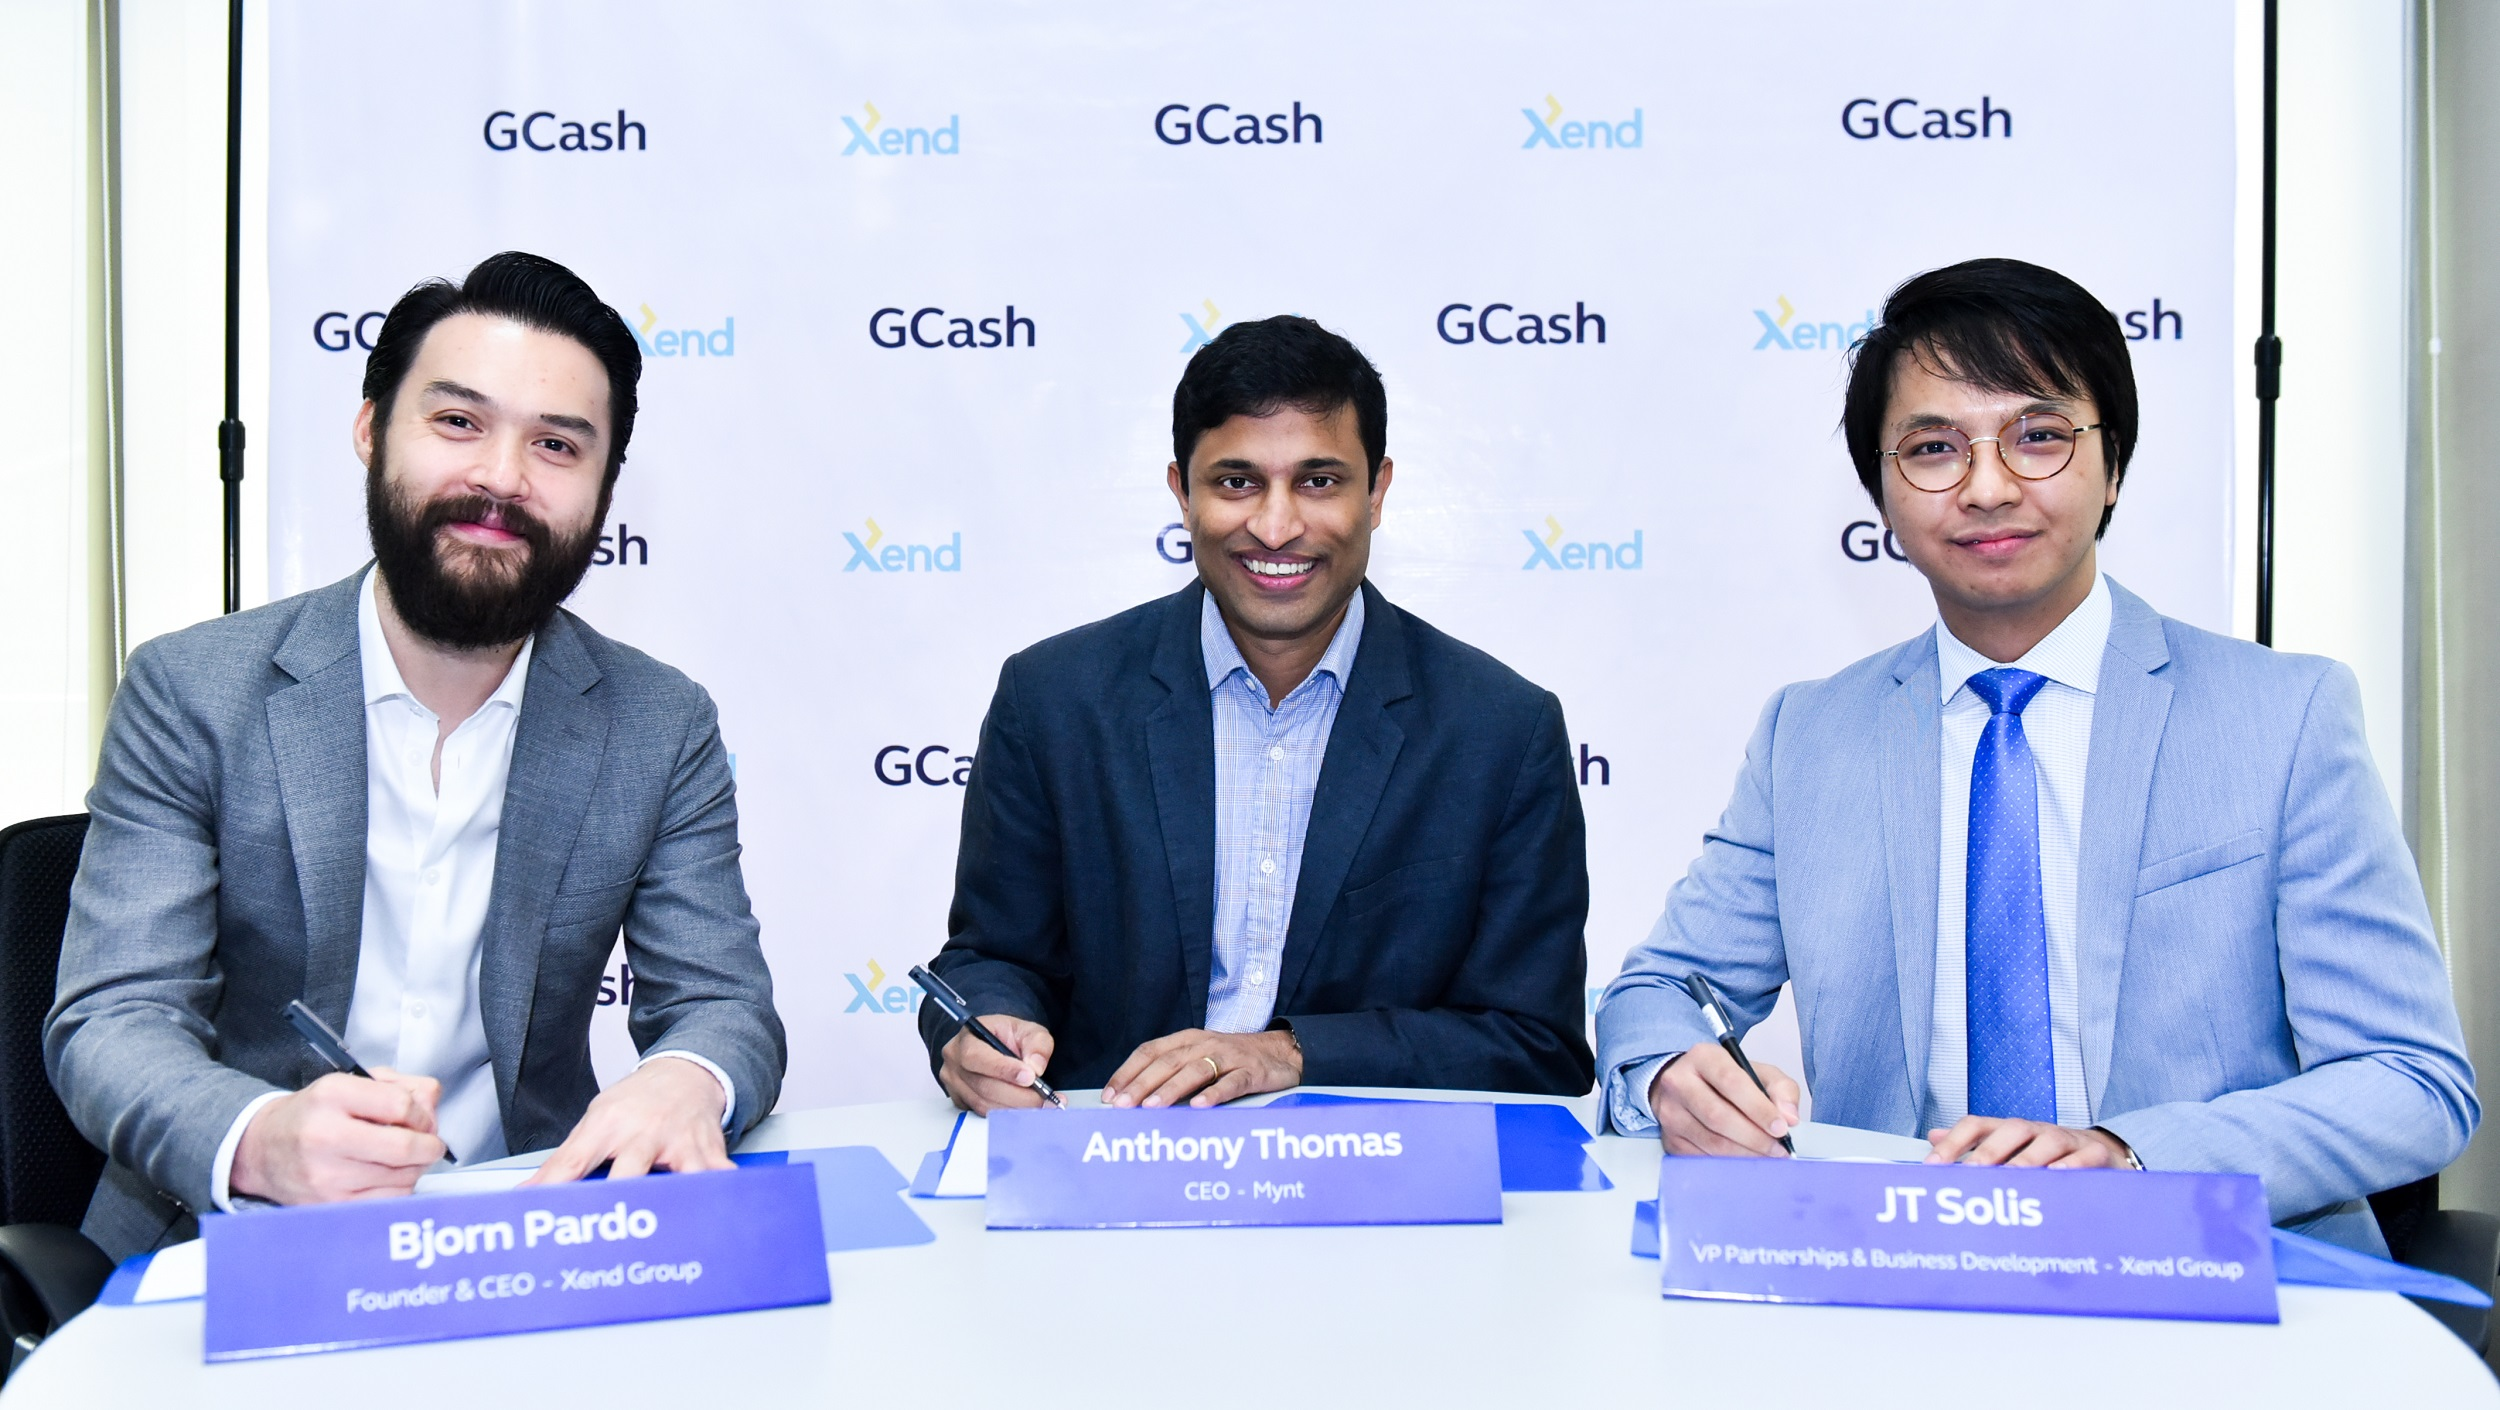 GCash, Xend Group partner for 1st QR-paid shipment service in PHL